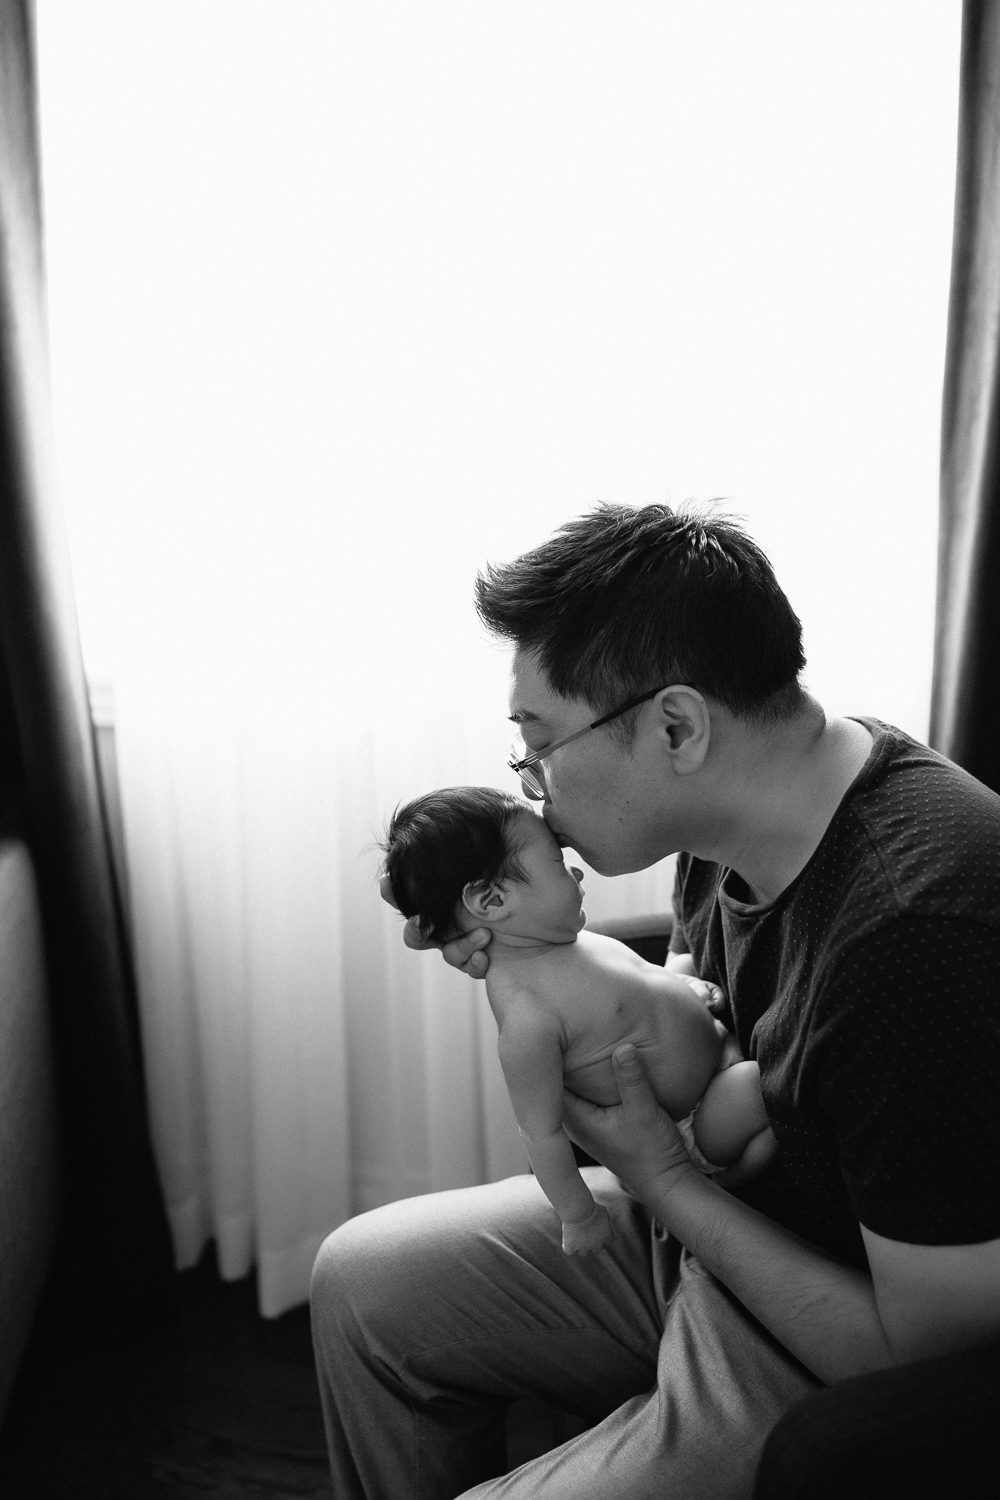 father sitting in armchair holding sleeping 2 week old baby boy in diaper up to his face and kissing his forehead - Markham Lifestyle Photography